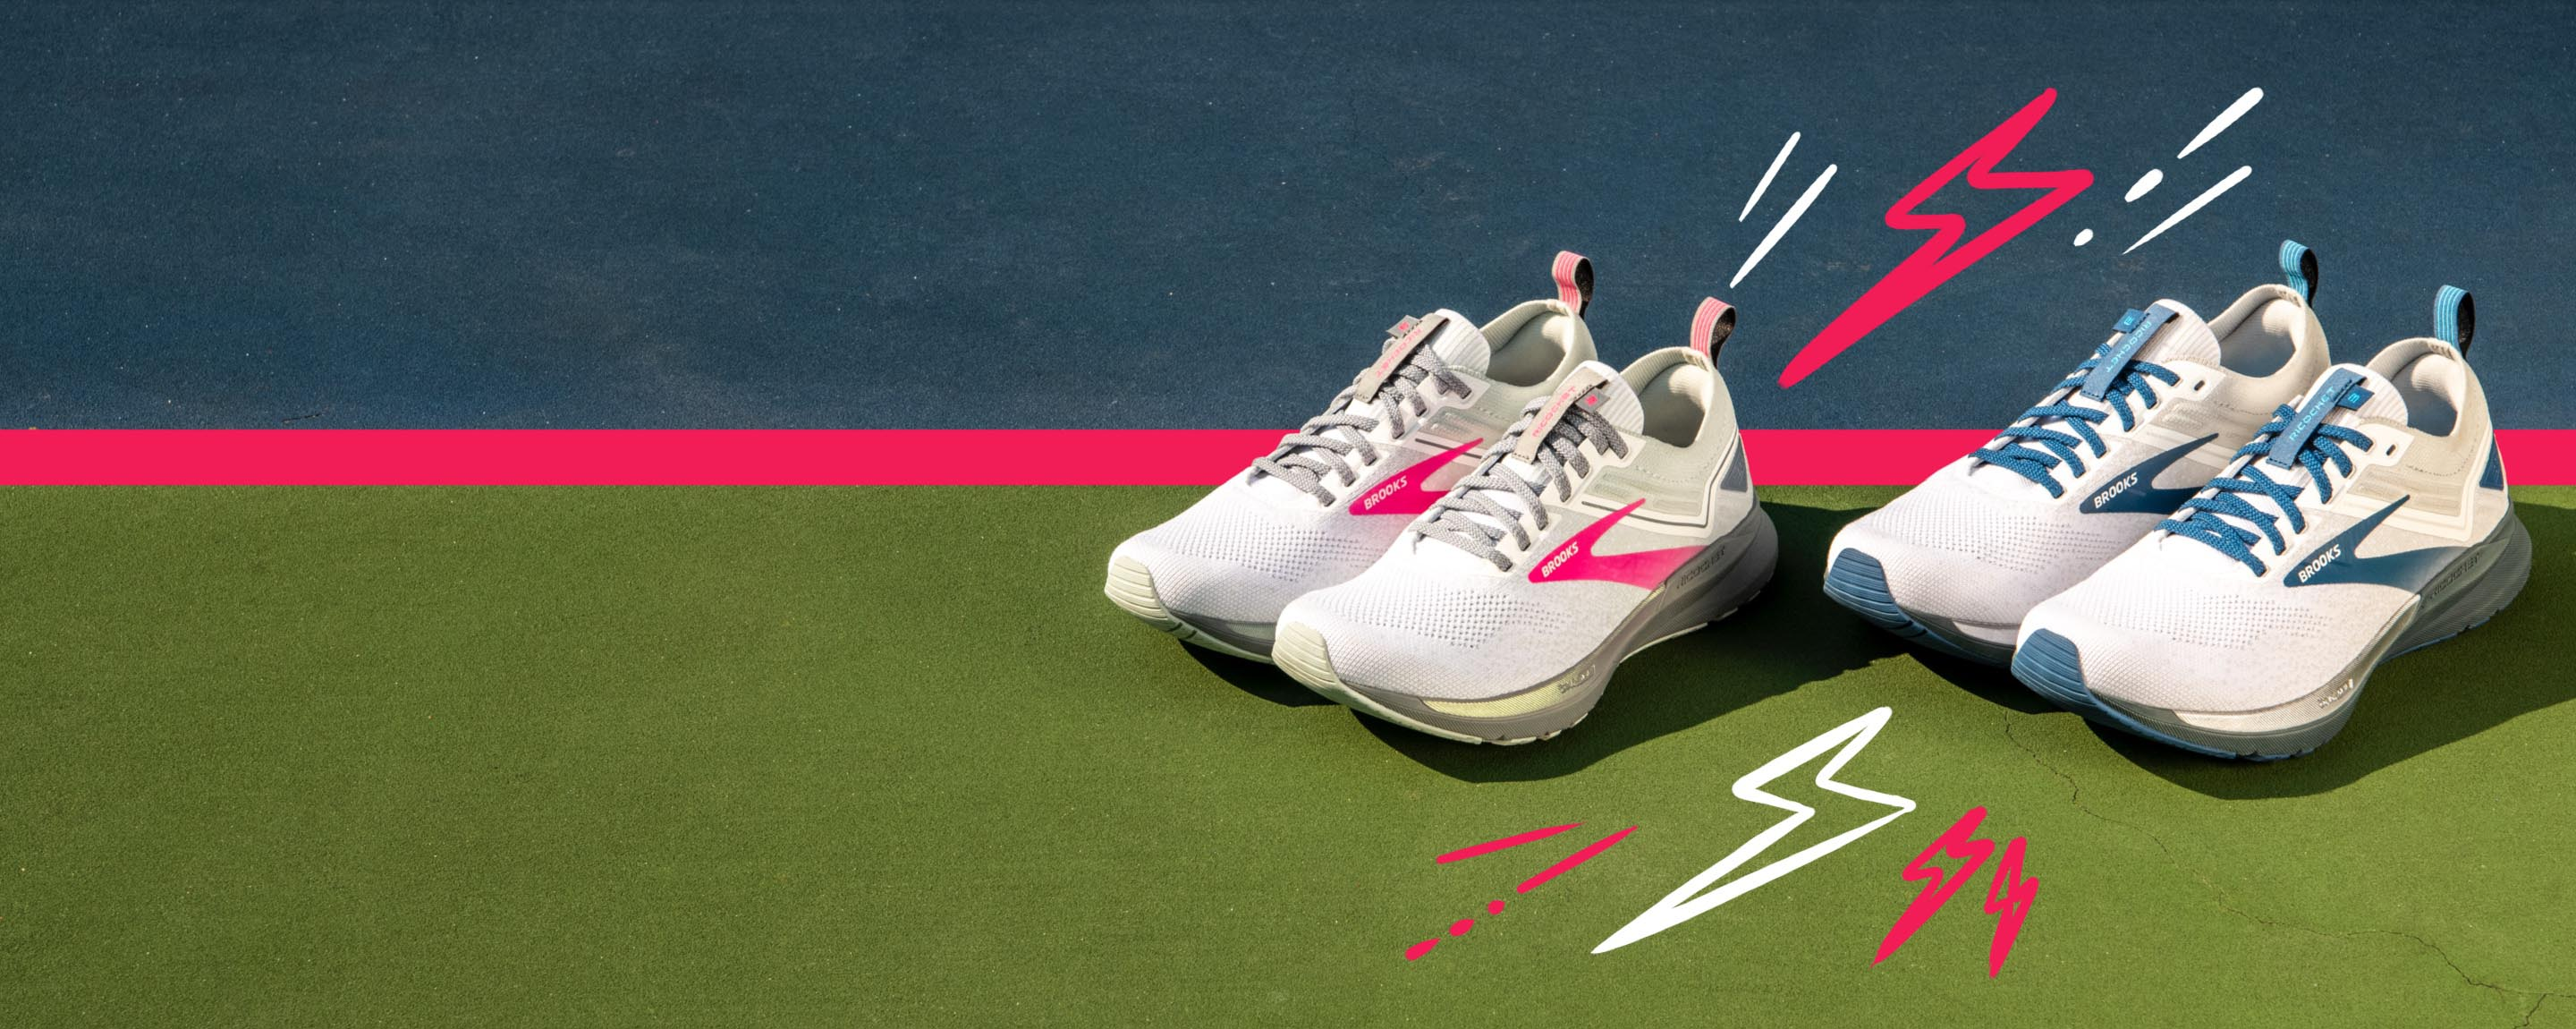 Two pairs of Brooks Ricochet shoes in pink and blue.